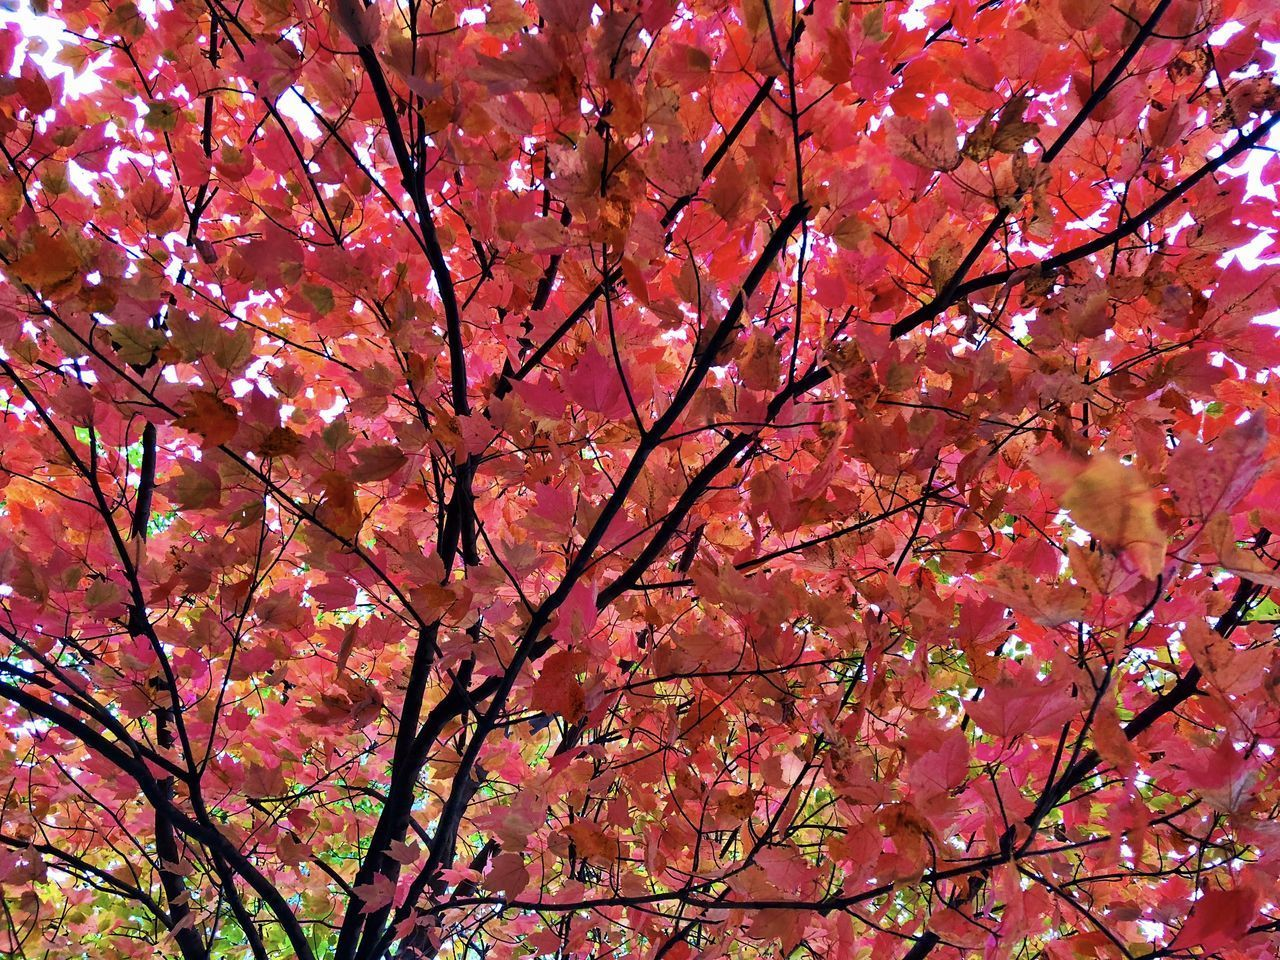 tree, branch, plant, beauty in nature, pink color, autumn, low angle view, flower, growth, no people, change, nature, flowering plant, day, fragility, backgrounds, blossom, outdoors, full frame, springtime, cherry tree, cherry blossom, maple leaf